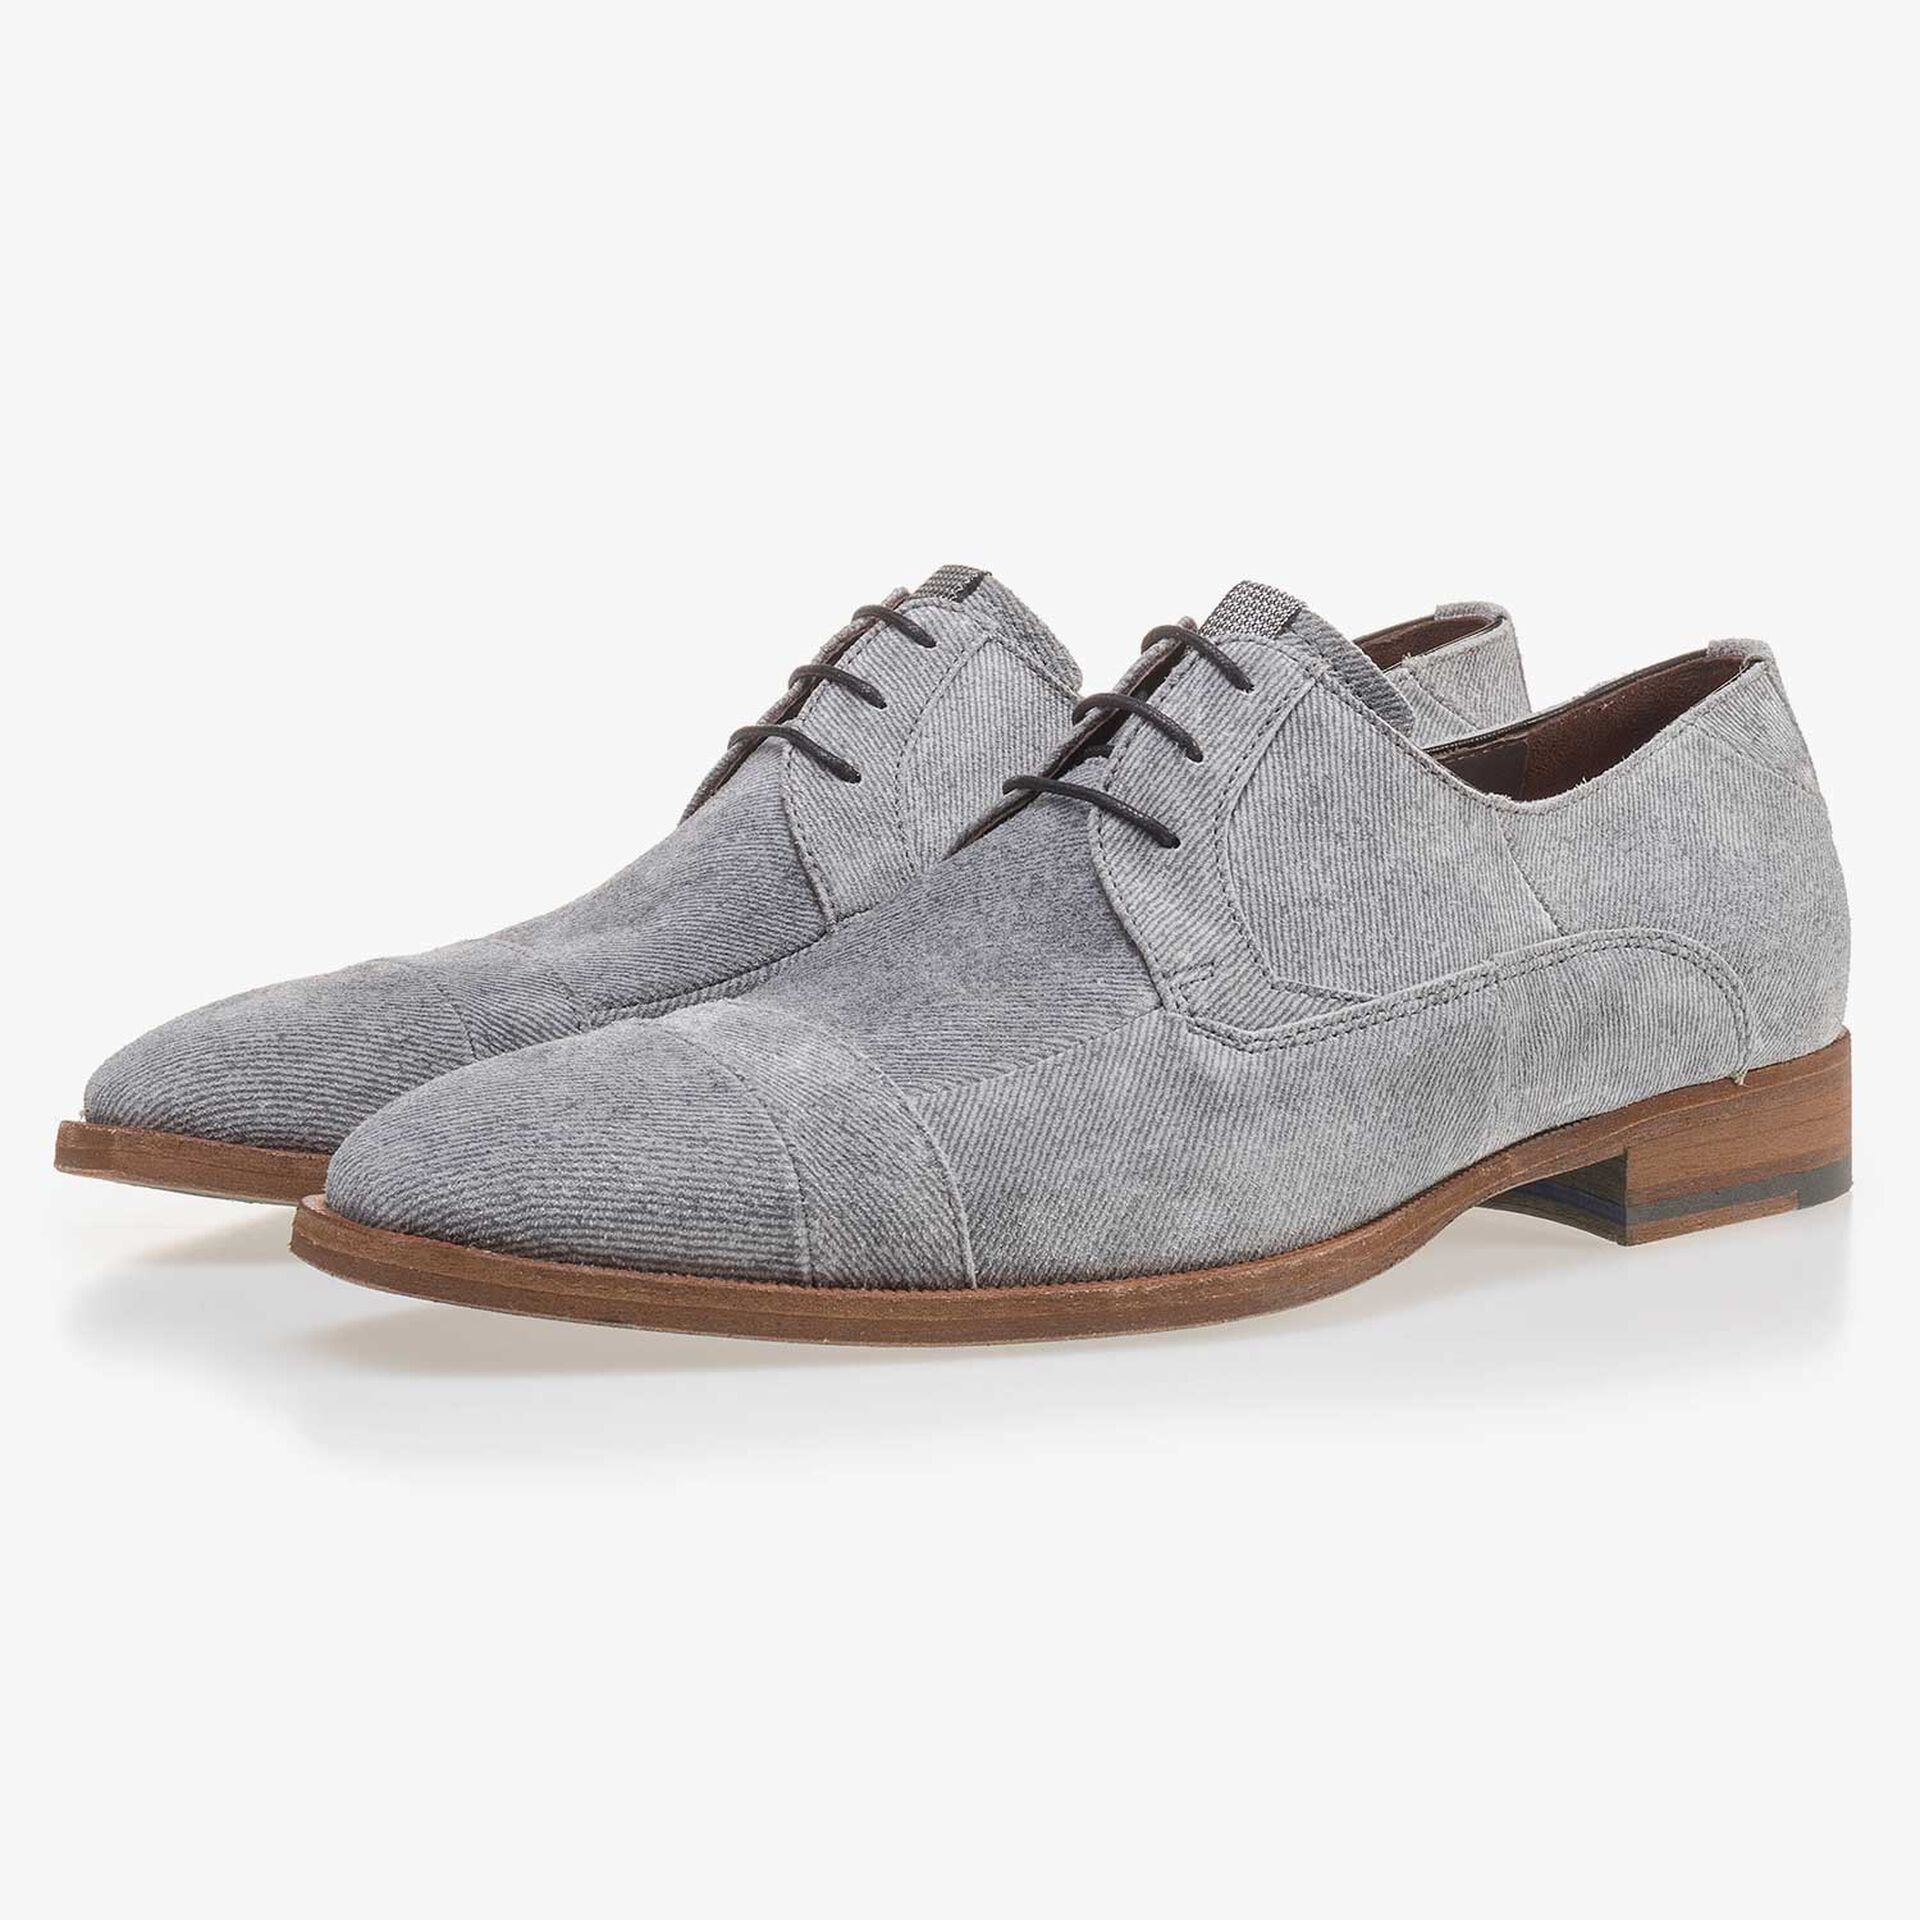 Grey suede leather lace shoe